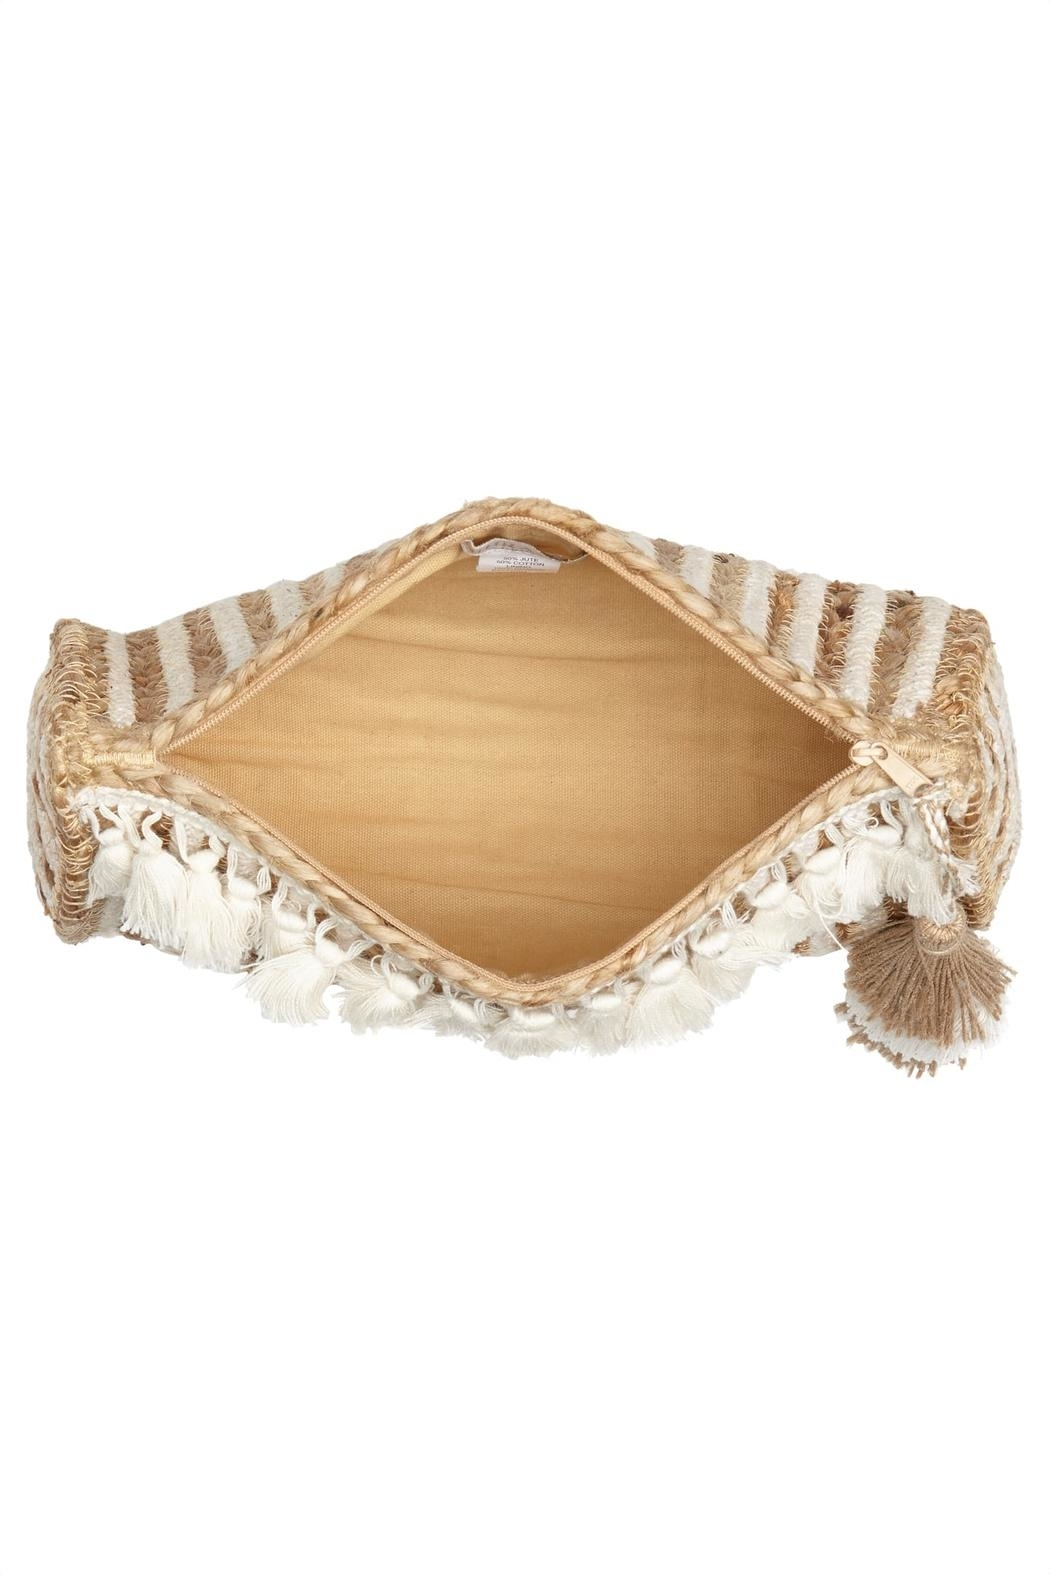 Shiraleah Shimmy All Night Clutch - Side Cropped Image